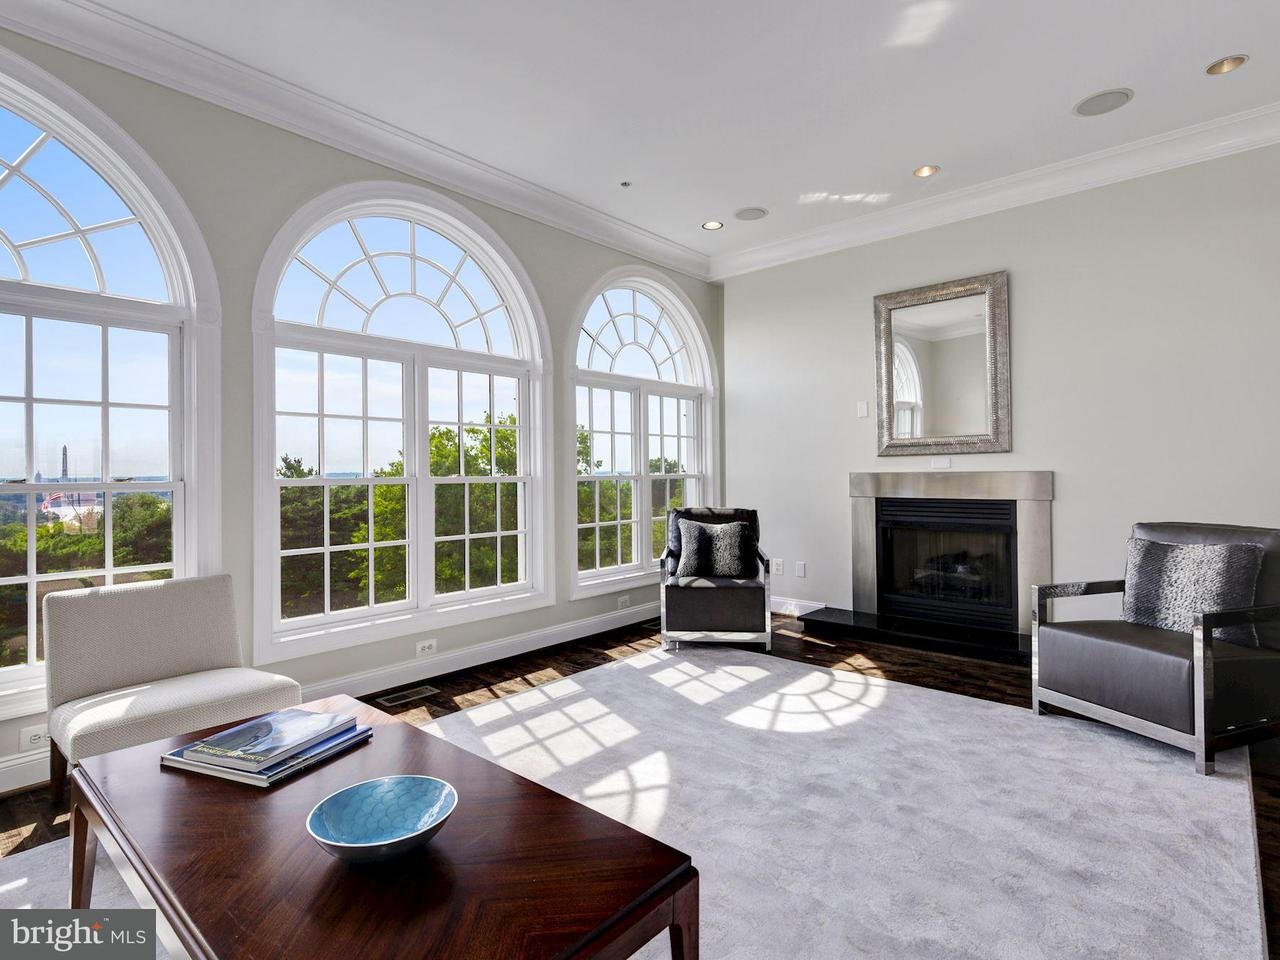 Single Family for Sale at 1404 Meade St Arlington, Virginia 22209 United States